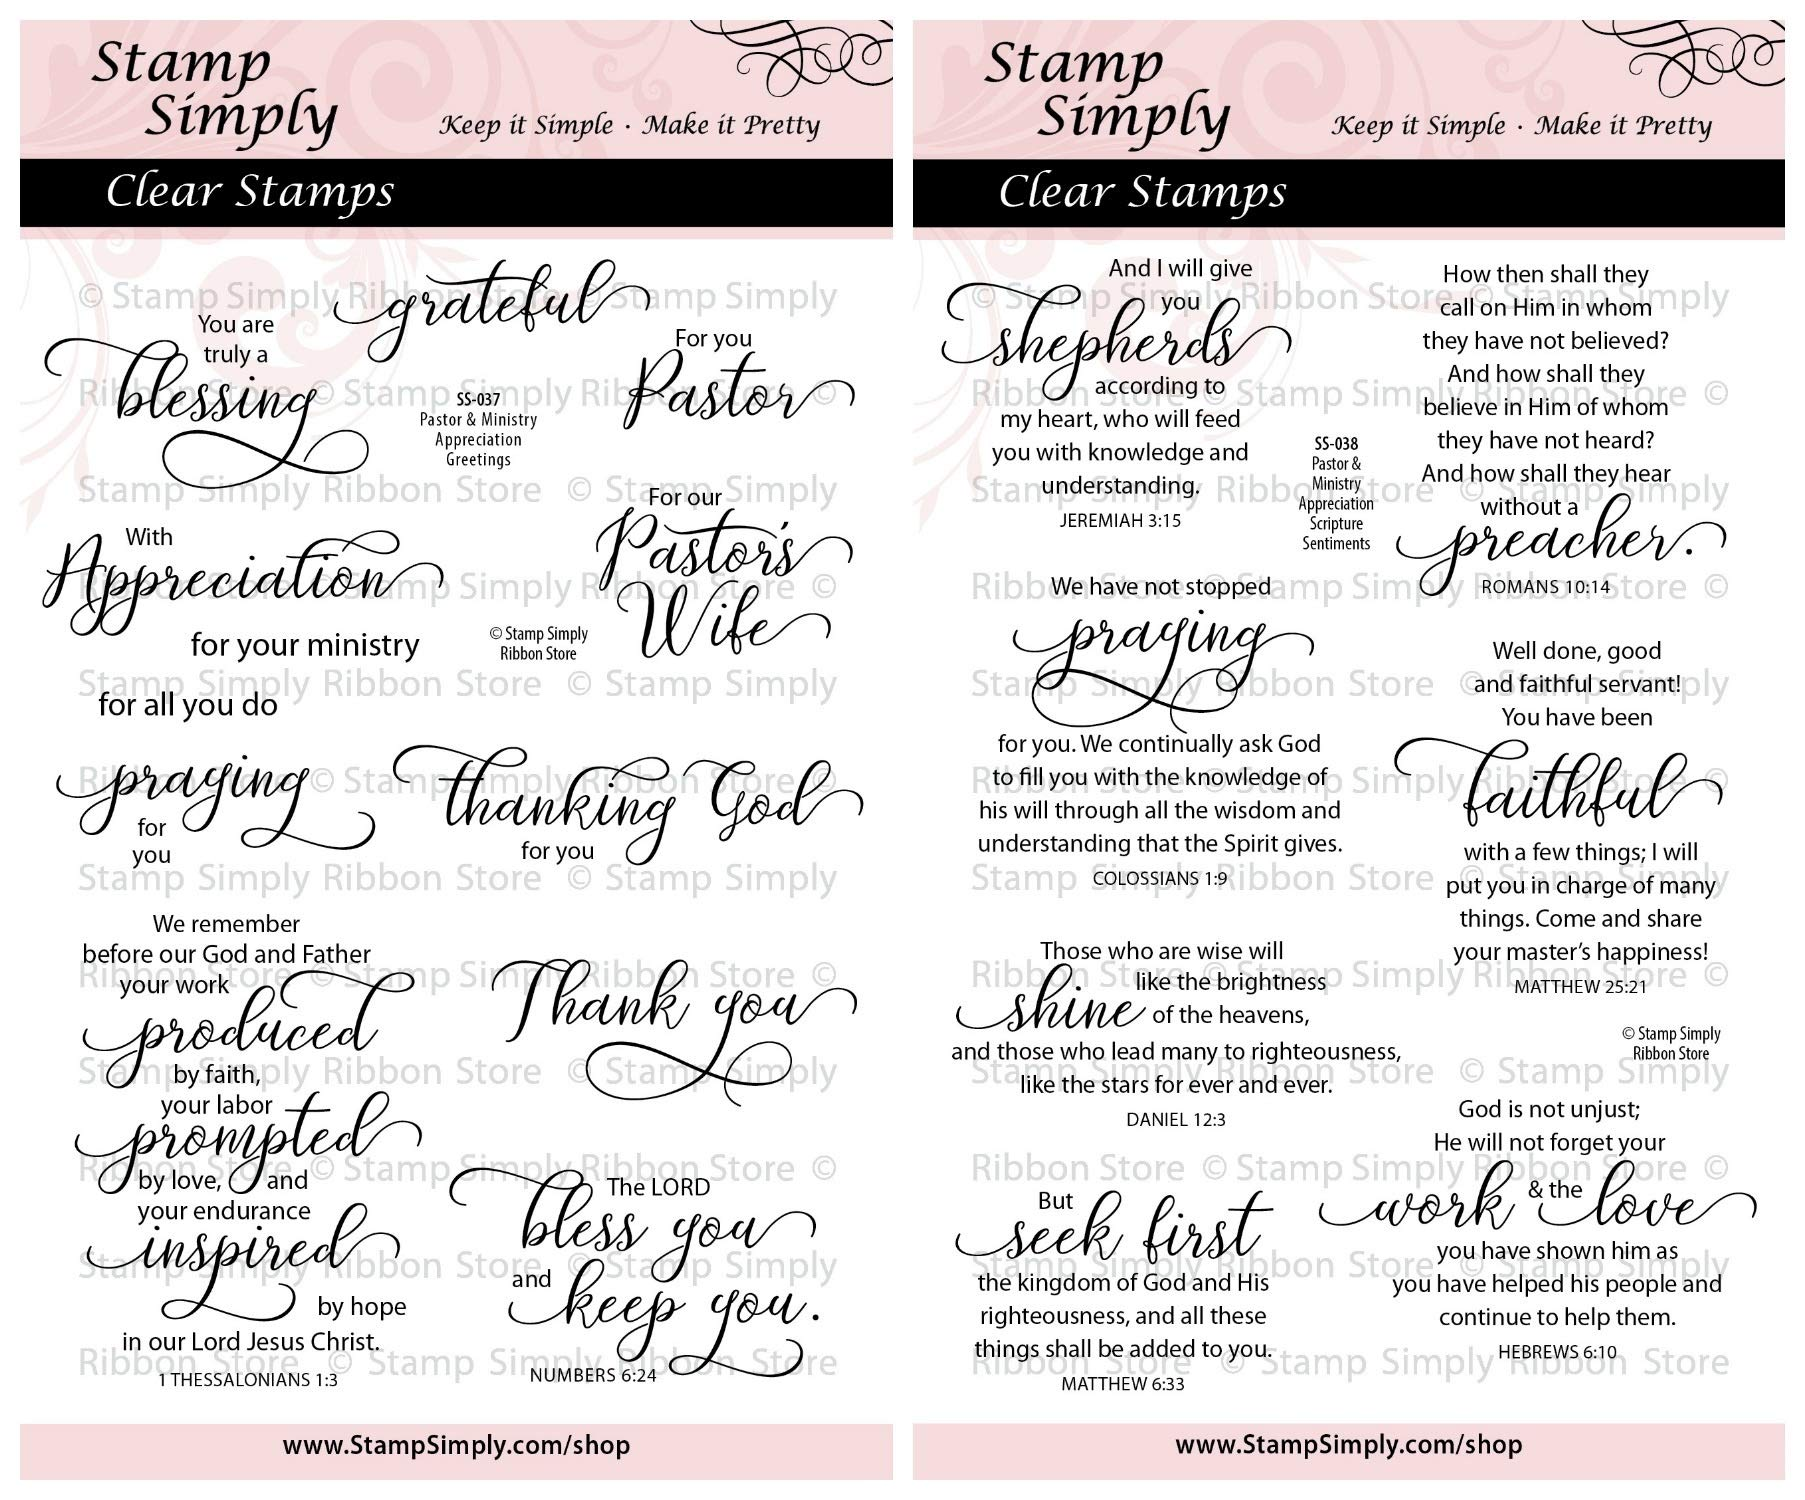 Stamp Simply Clear Stamps Pastor and Ministry Appreciation Greetings Christian Religious (2-Pack) 4x6 Inch Sheets - 19 Pieces by Stamp Simply